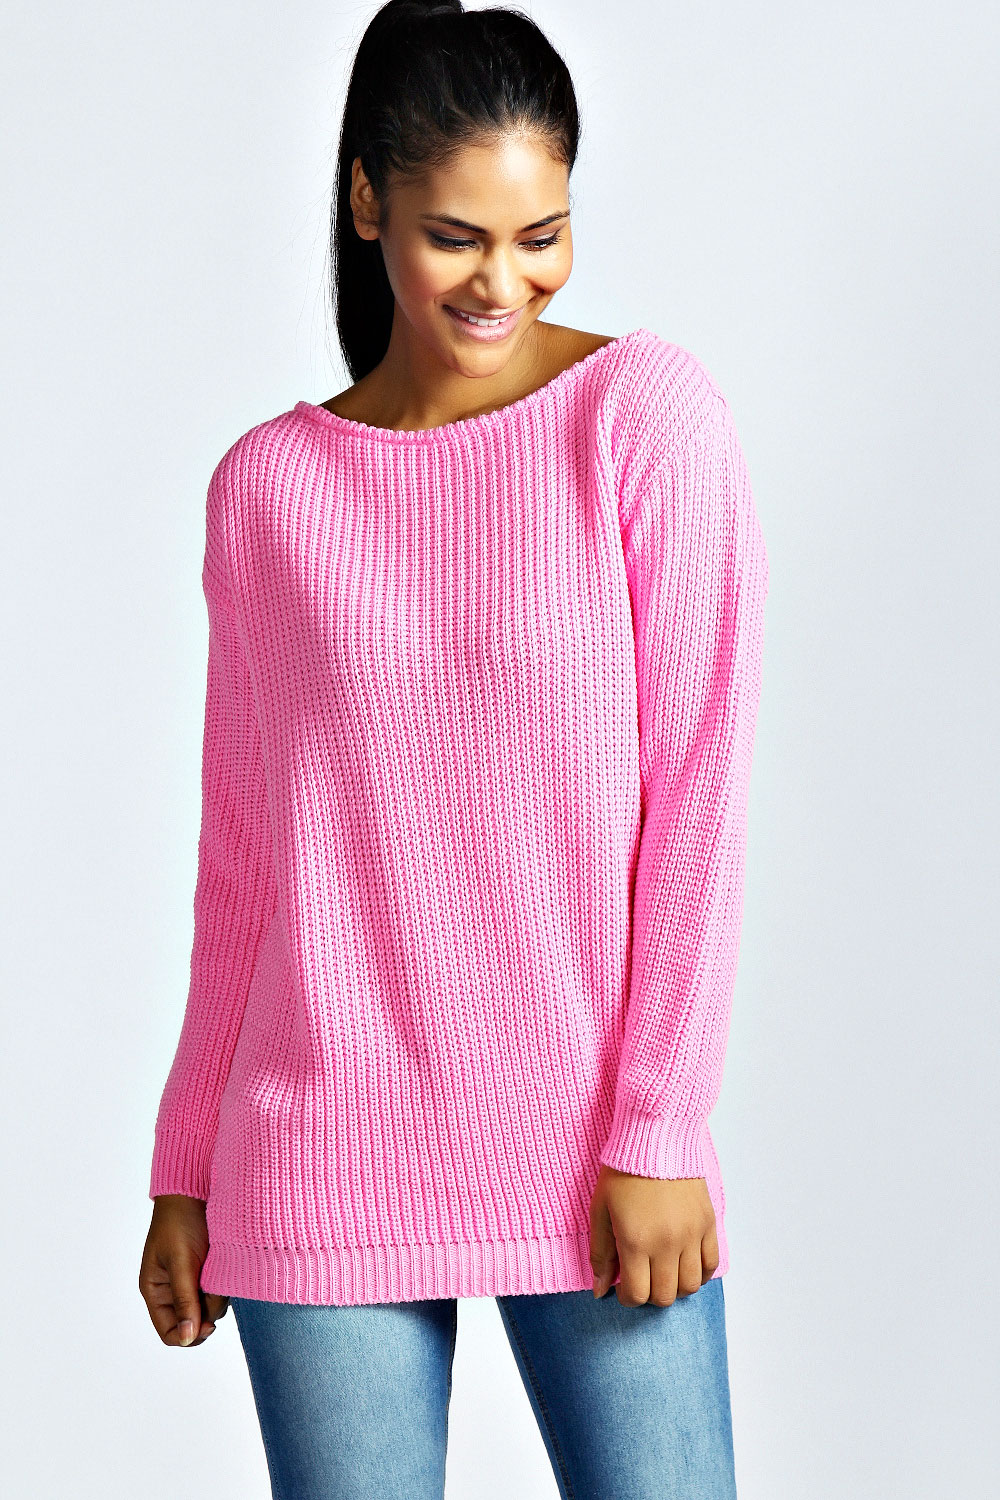 Shop our Collection of Women's Pink Sweaters at piserialajax.cf for the Latest Designer Brands & Styles. FREE SHIPPING AVAILABLE!